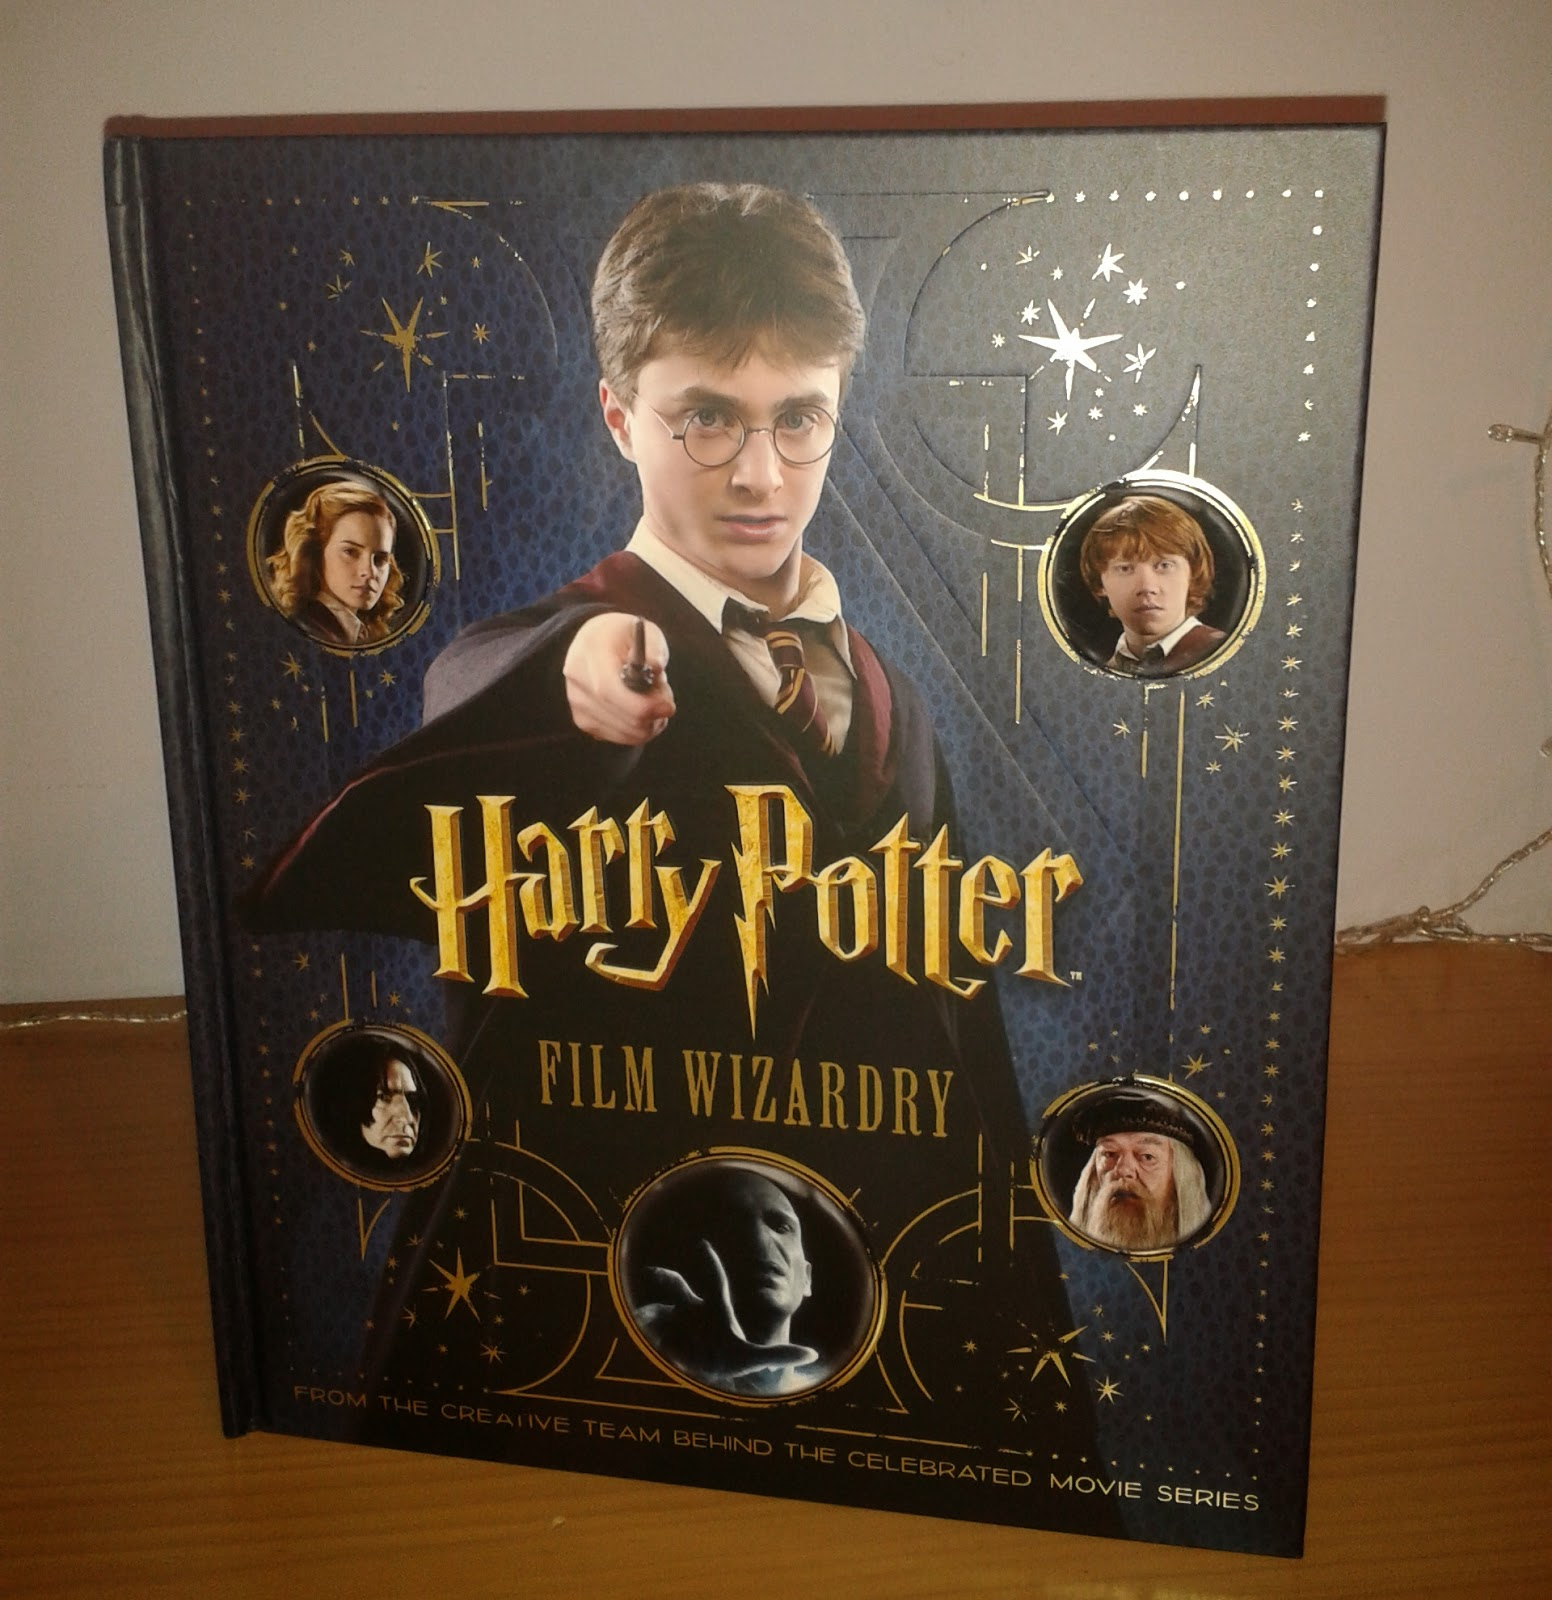 Harry Potter Libro 1 Descubridora De Cuentos Unboxing Harry Potter Film